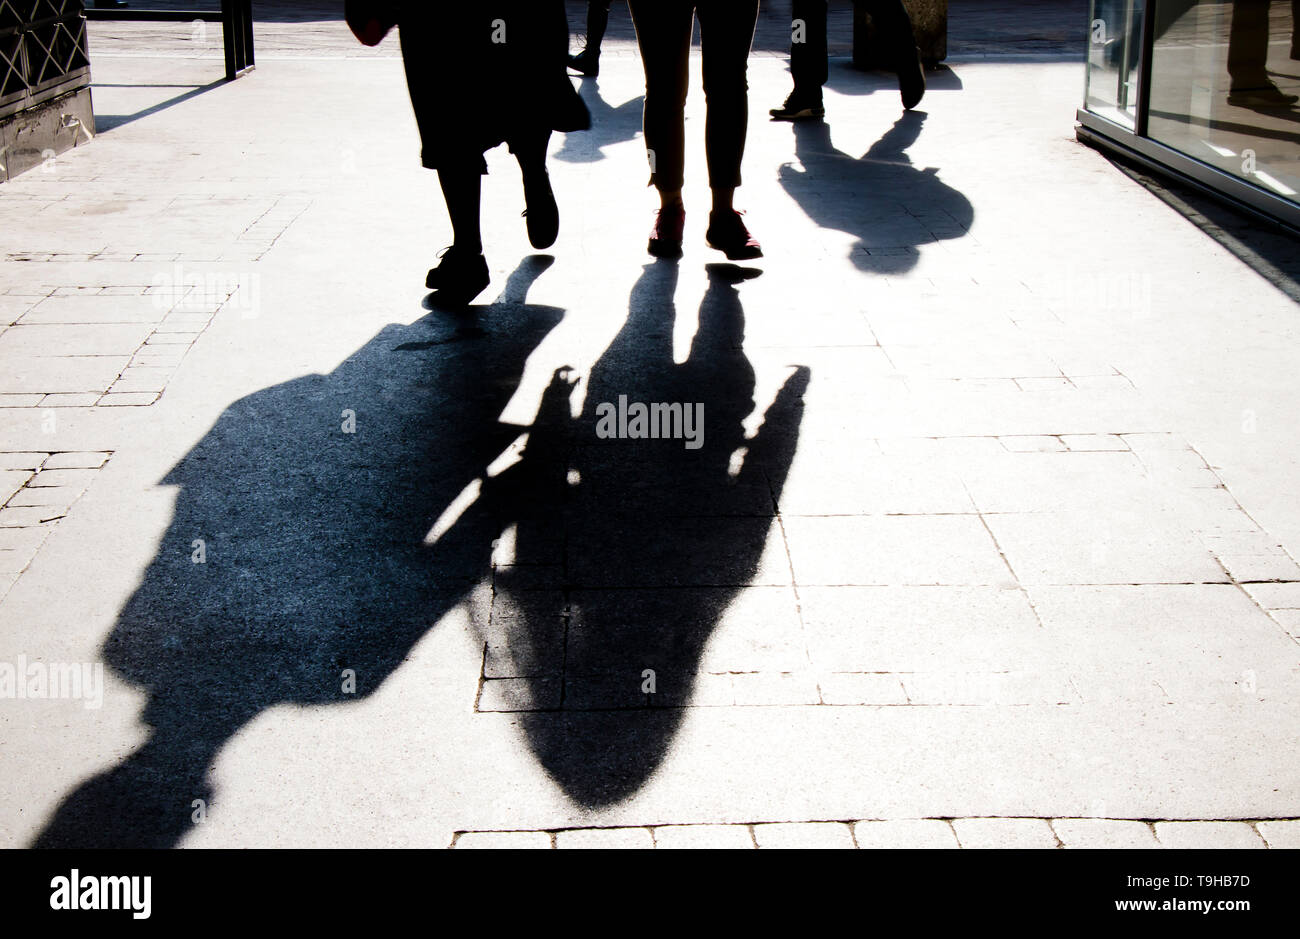 Blurry shadow silhouette of  people walking on city pedestrian street in high contrast black and white - Stock Image